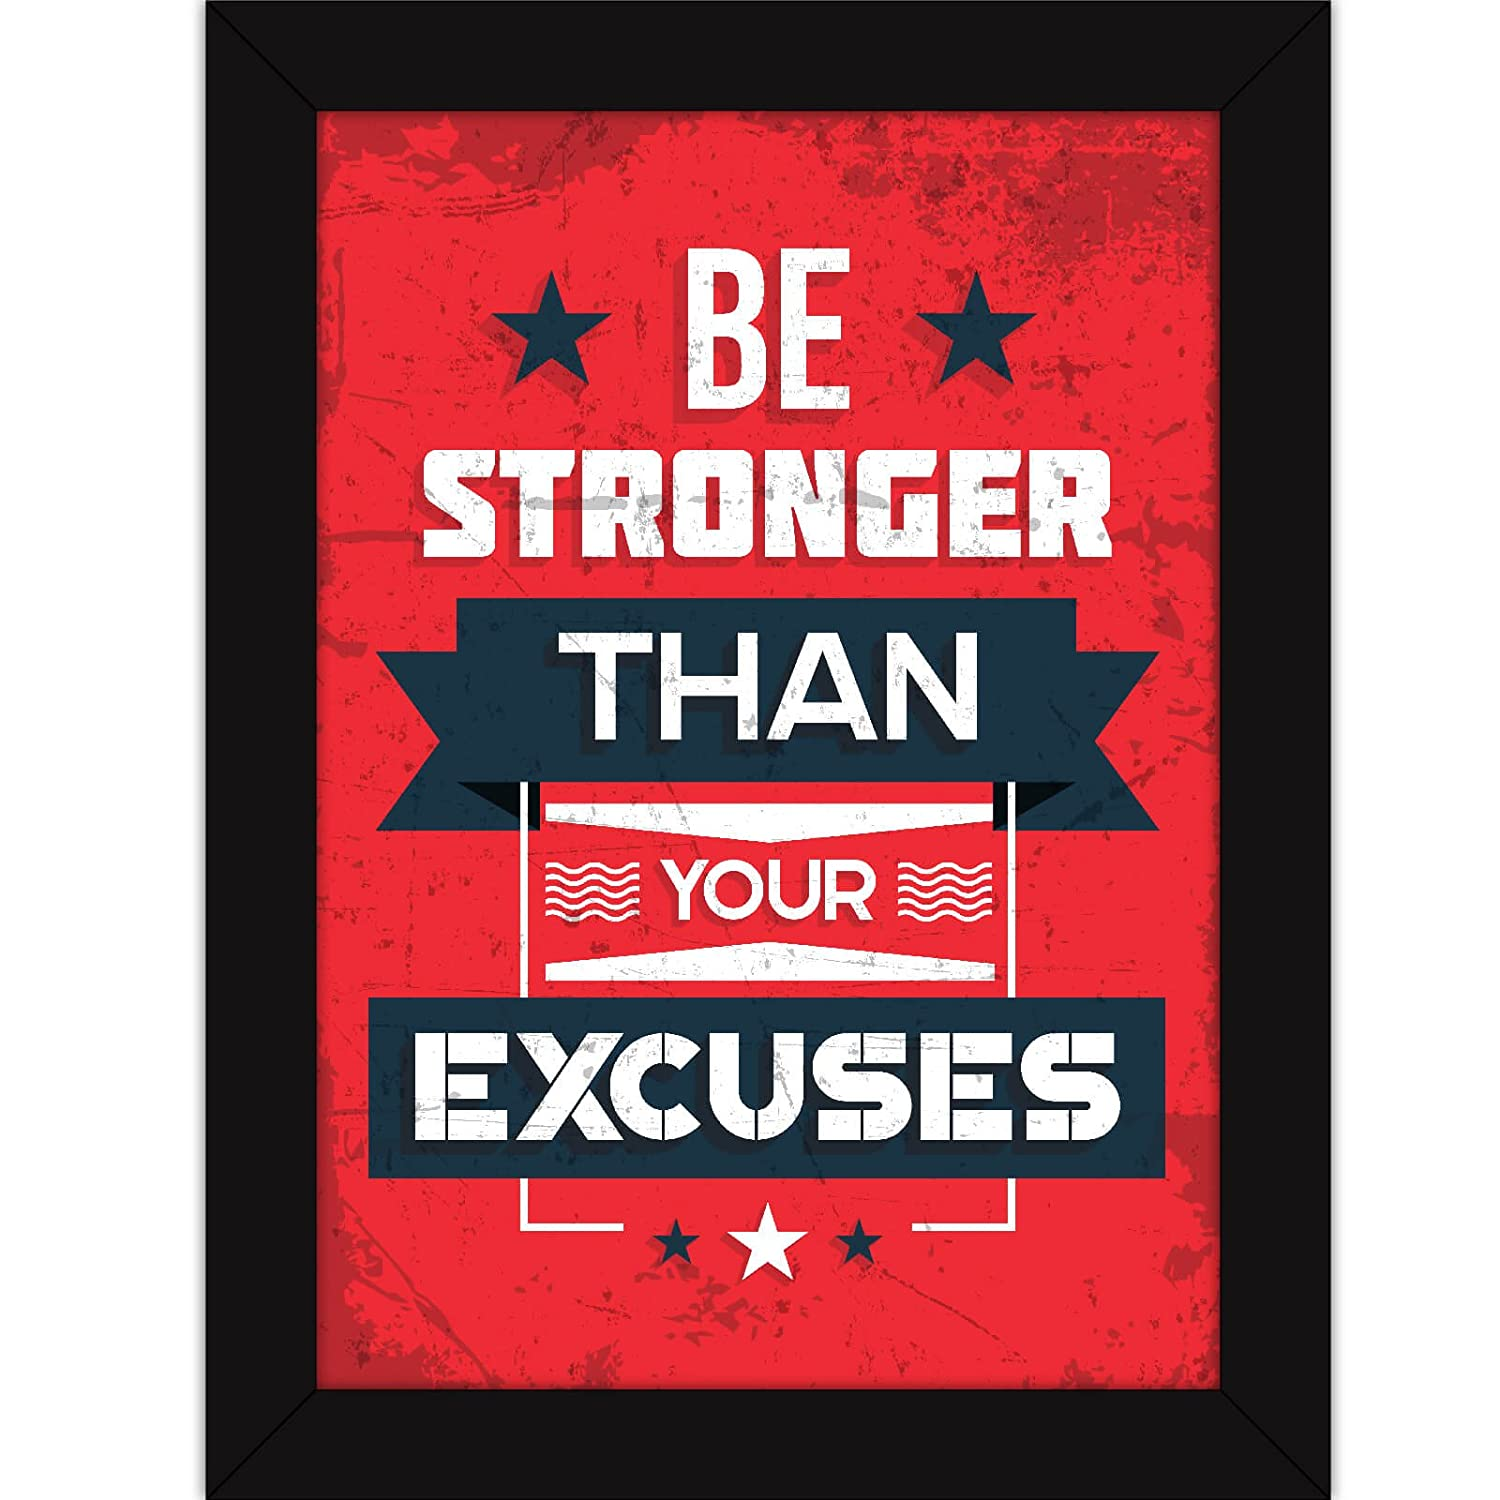 Motivational Posters For Office And Home Decor - Framed Quote For Inspiration - Be Stronger Than Excuses